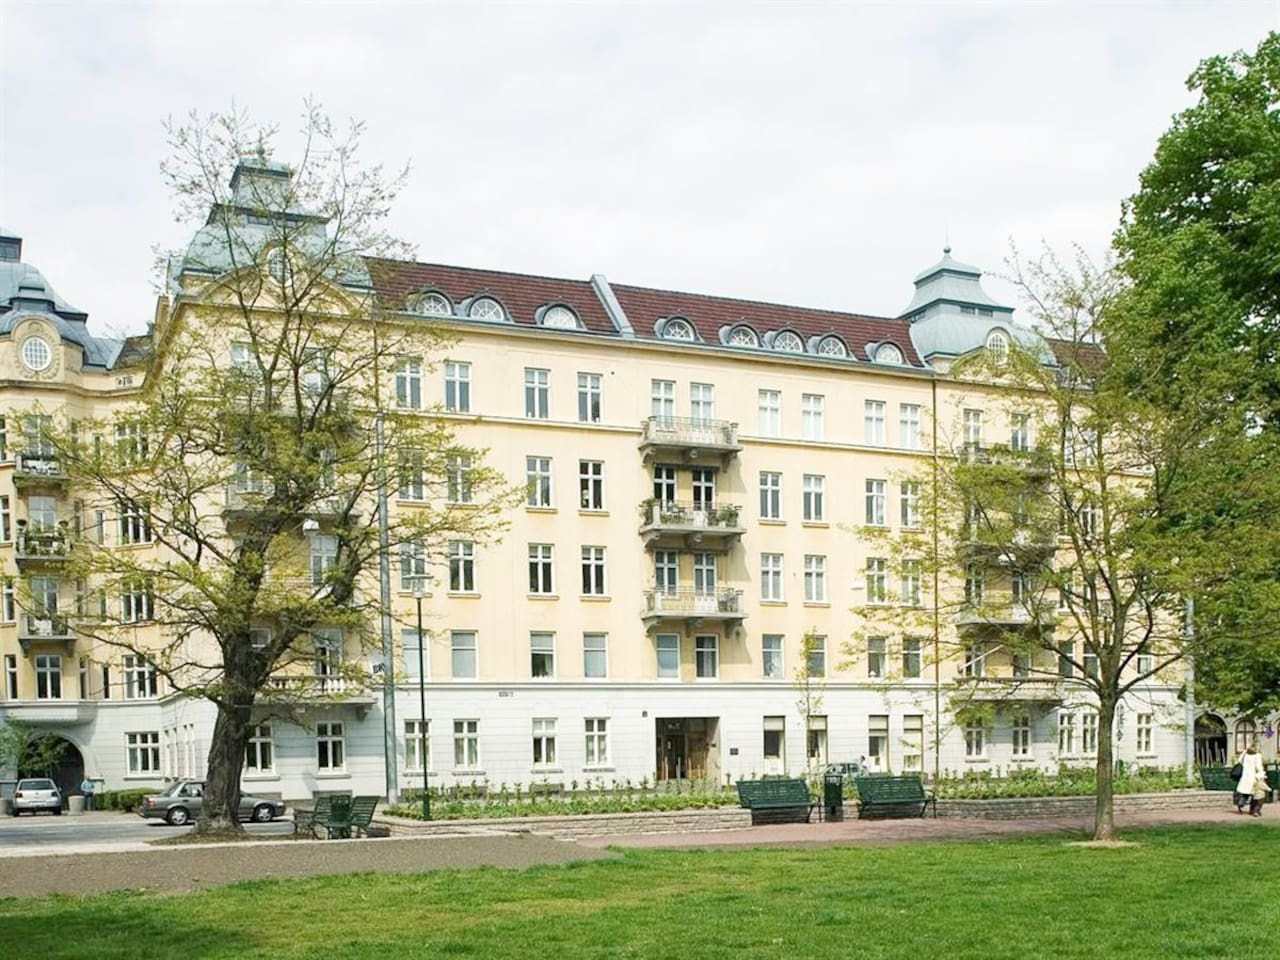 View from the park to the building